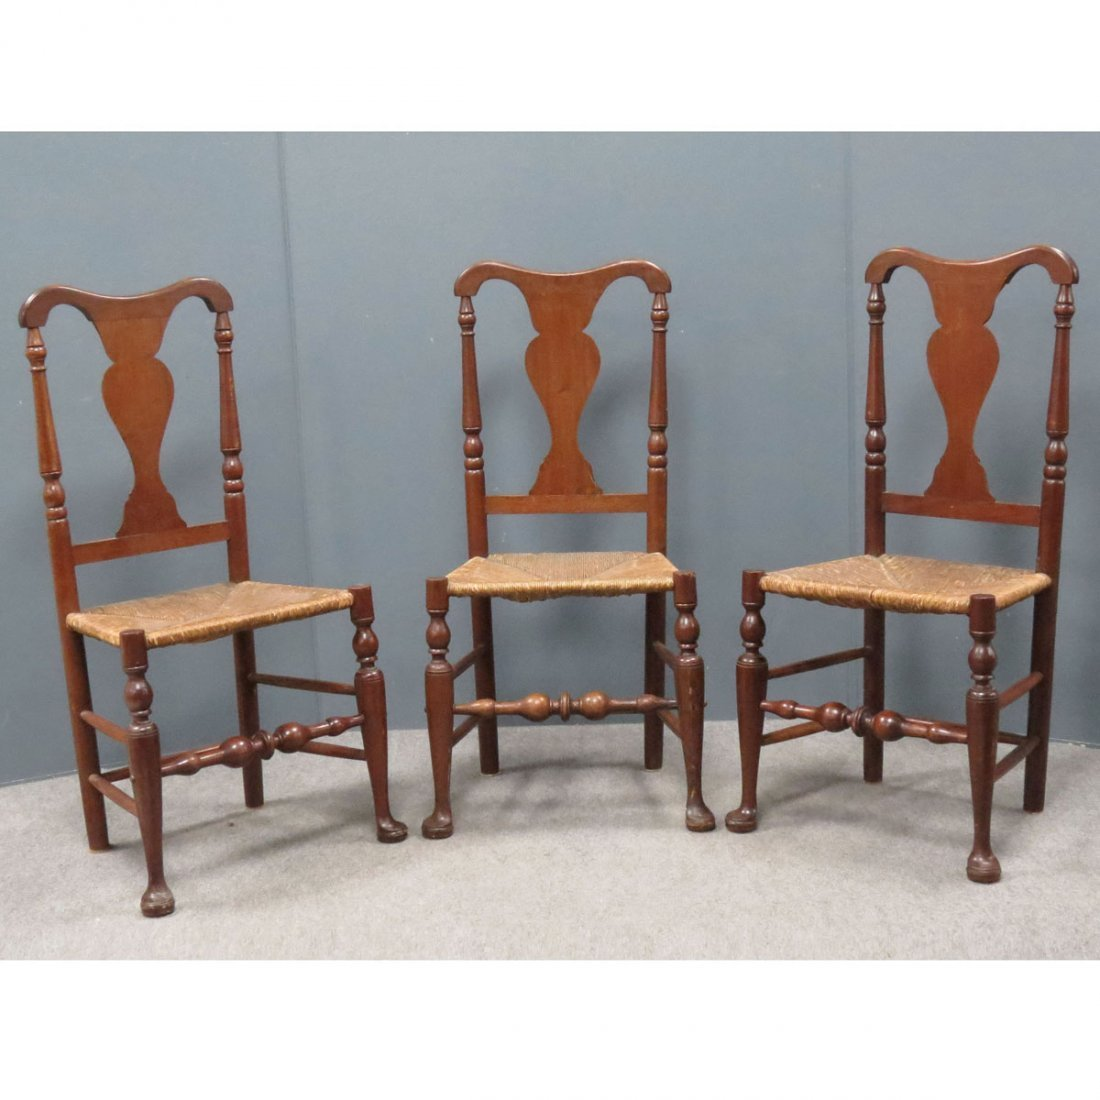 LOT (3) HUDSON VALLEY QUEEN ANNE STYLE CHAIRS